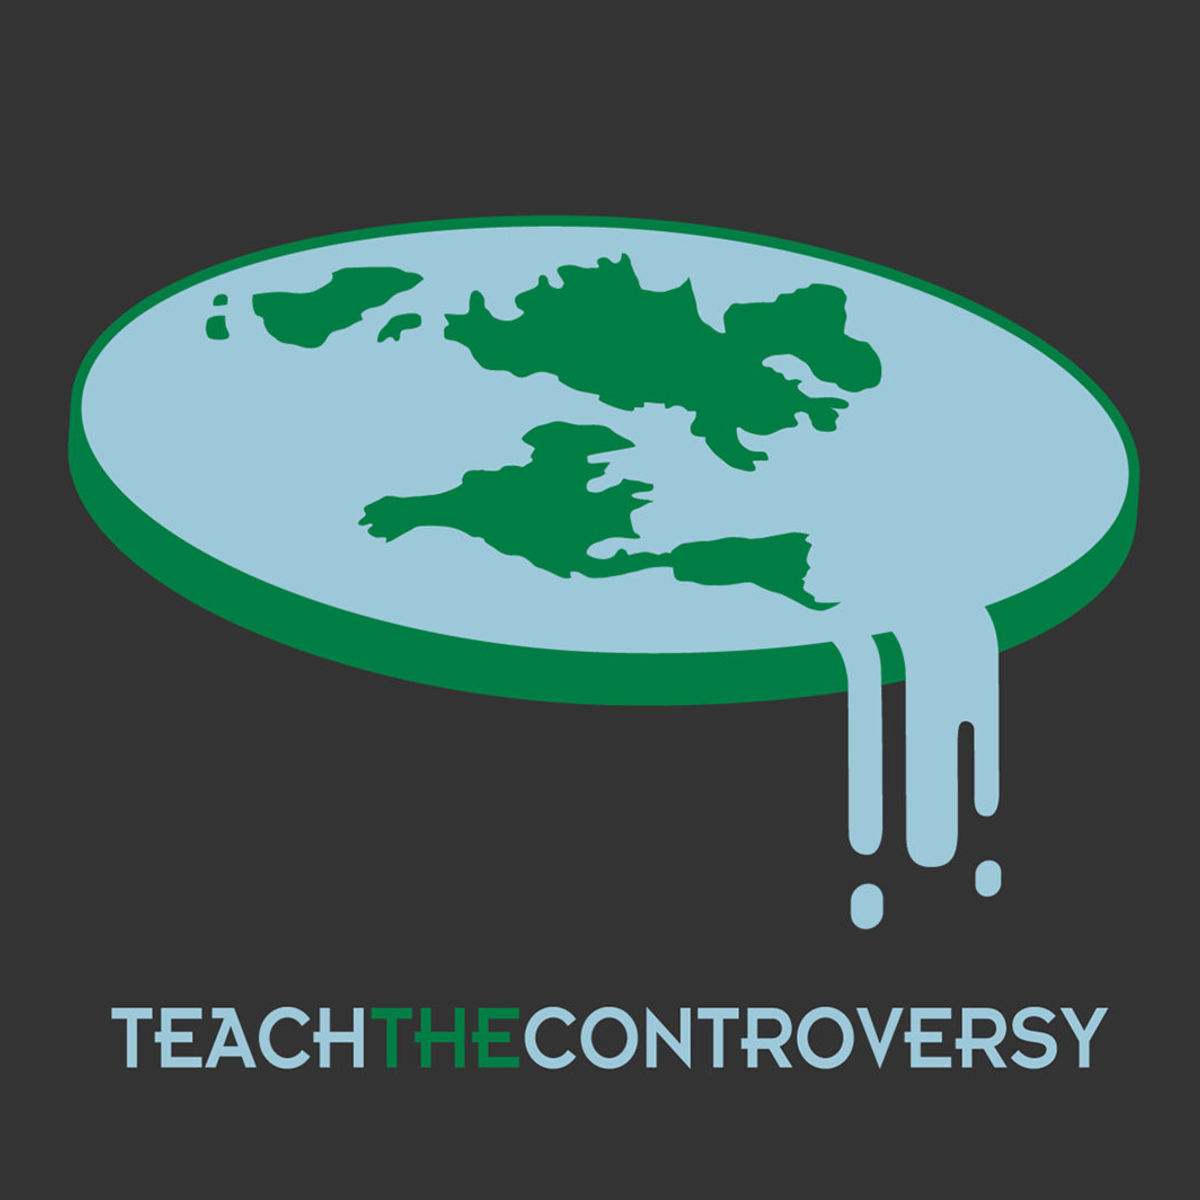 The Flat Earth idea is believed around the globe. Credit: Teach the Controversy